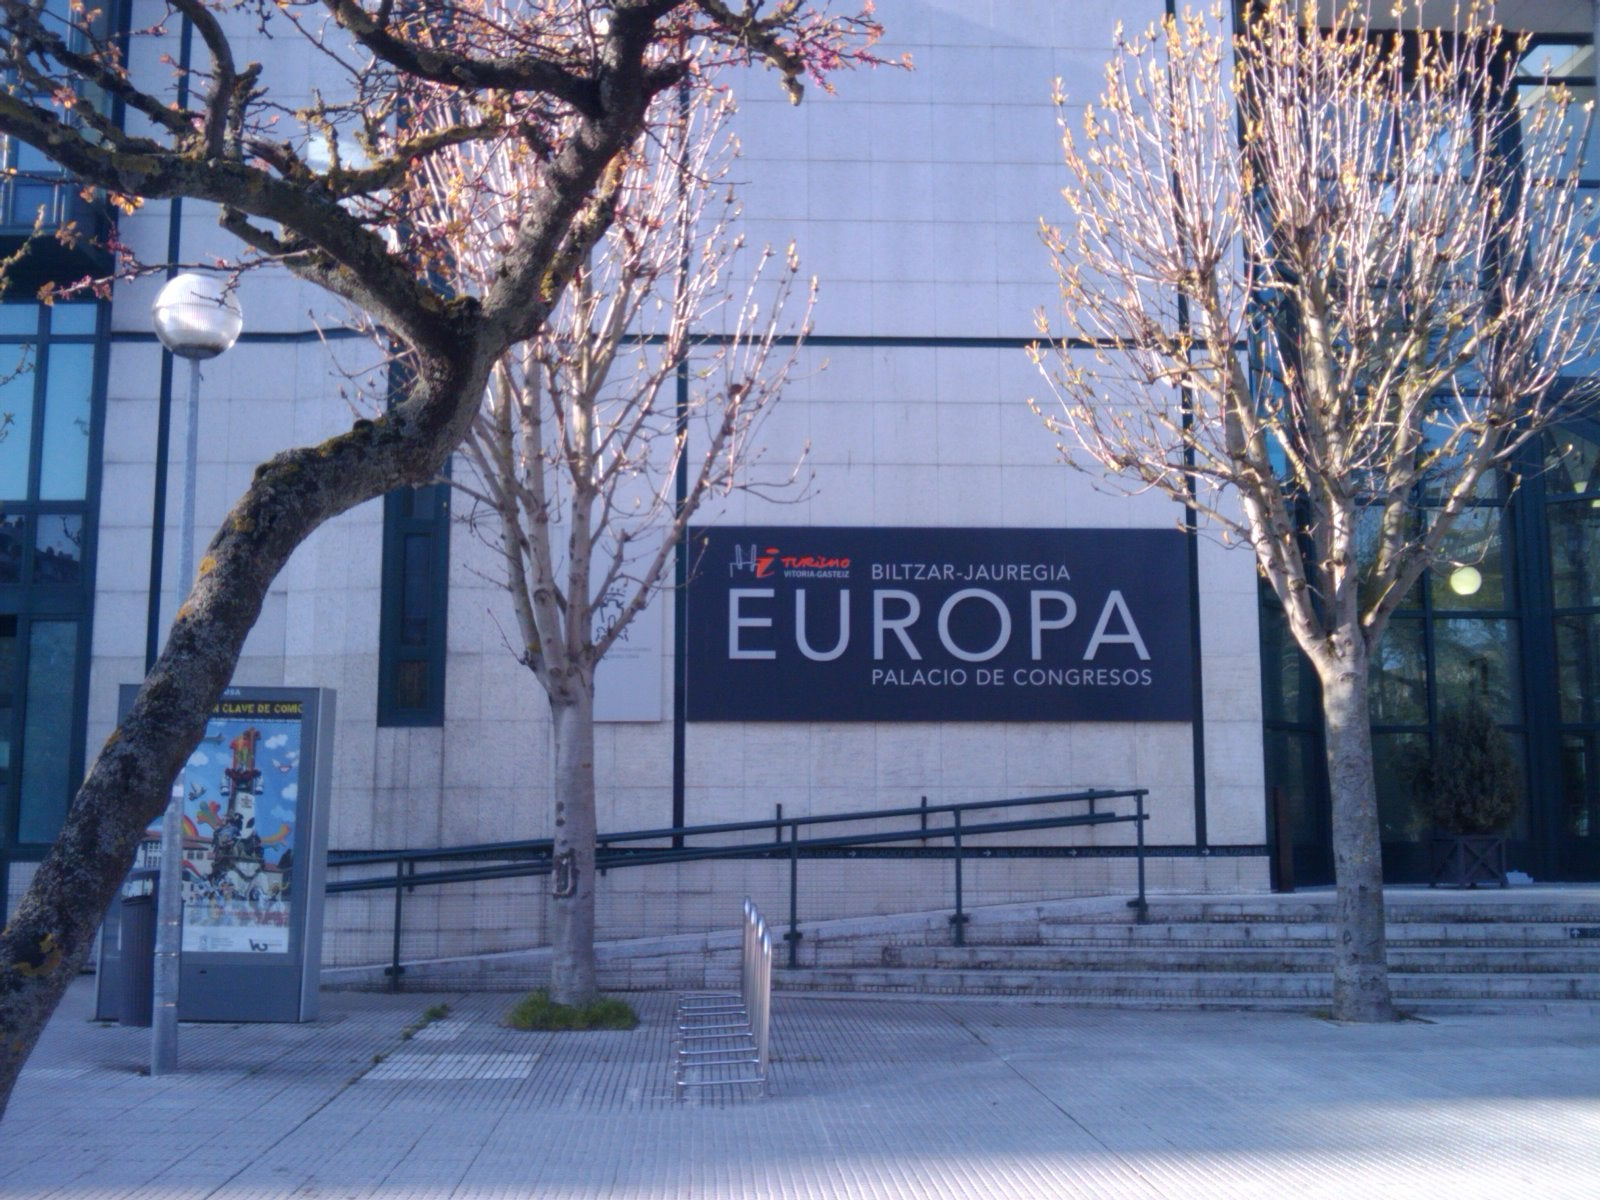 Europa Civic Centre